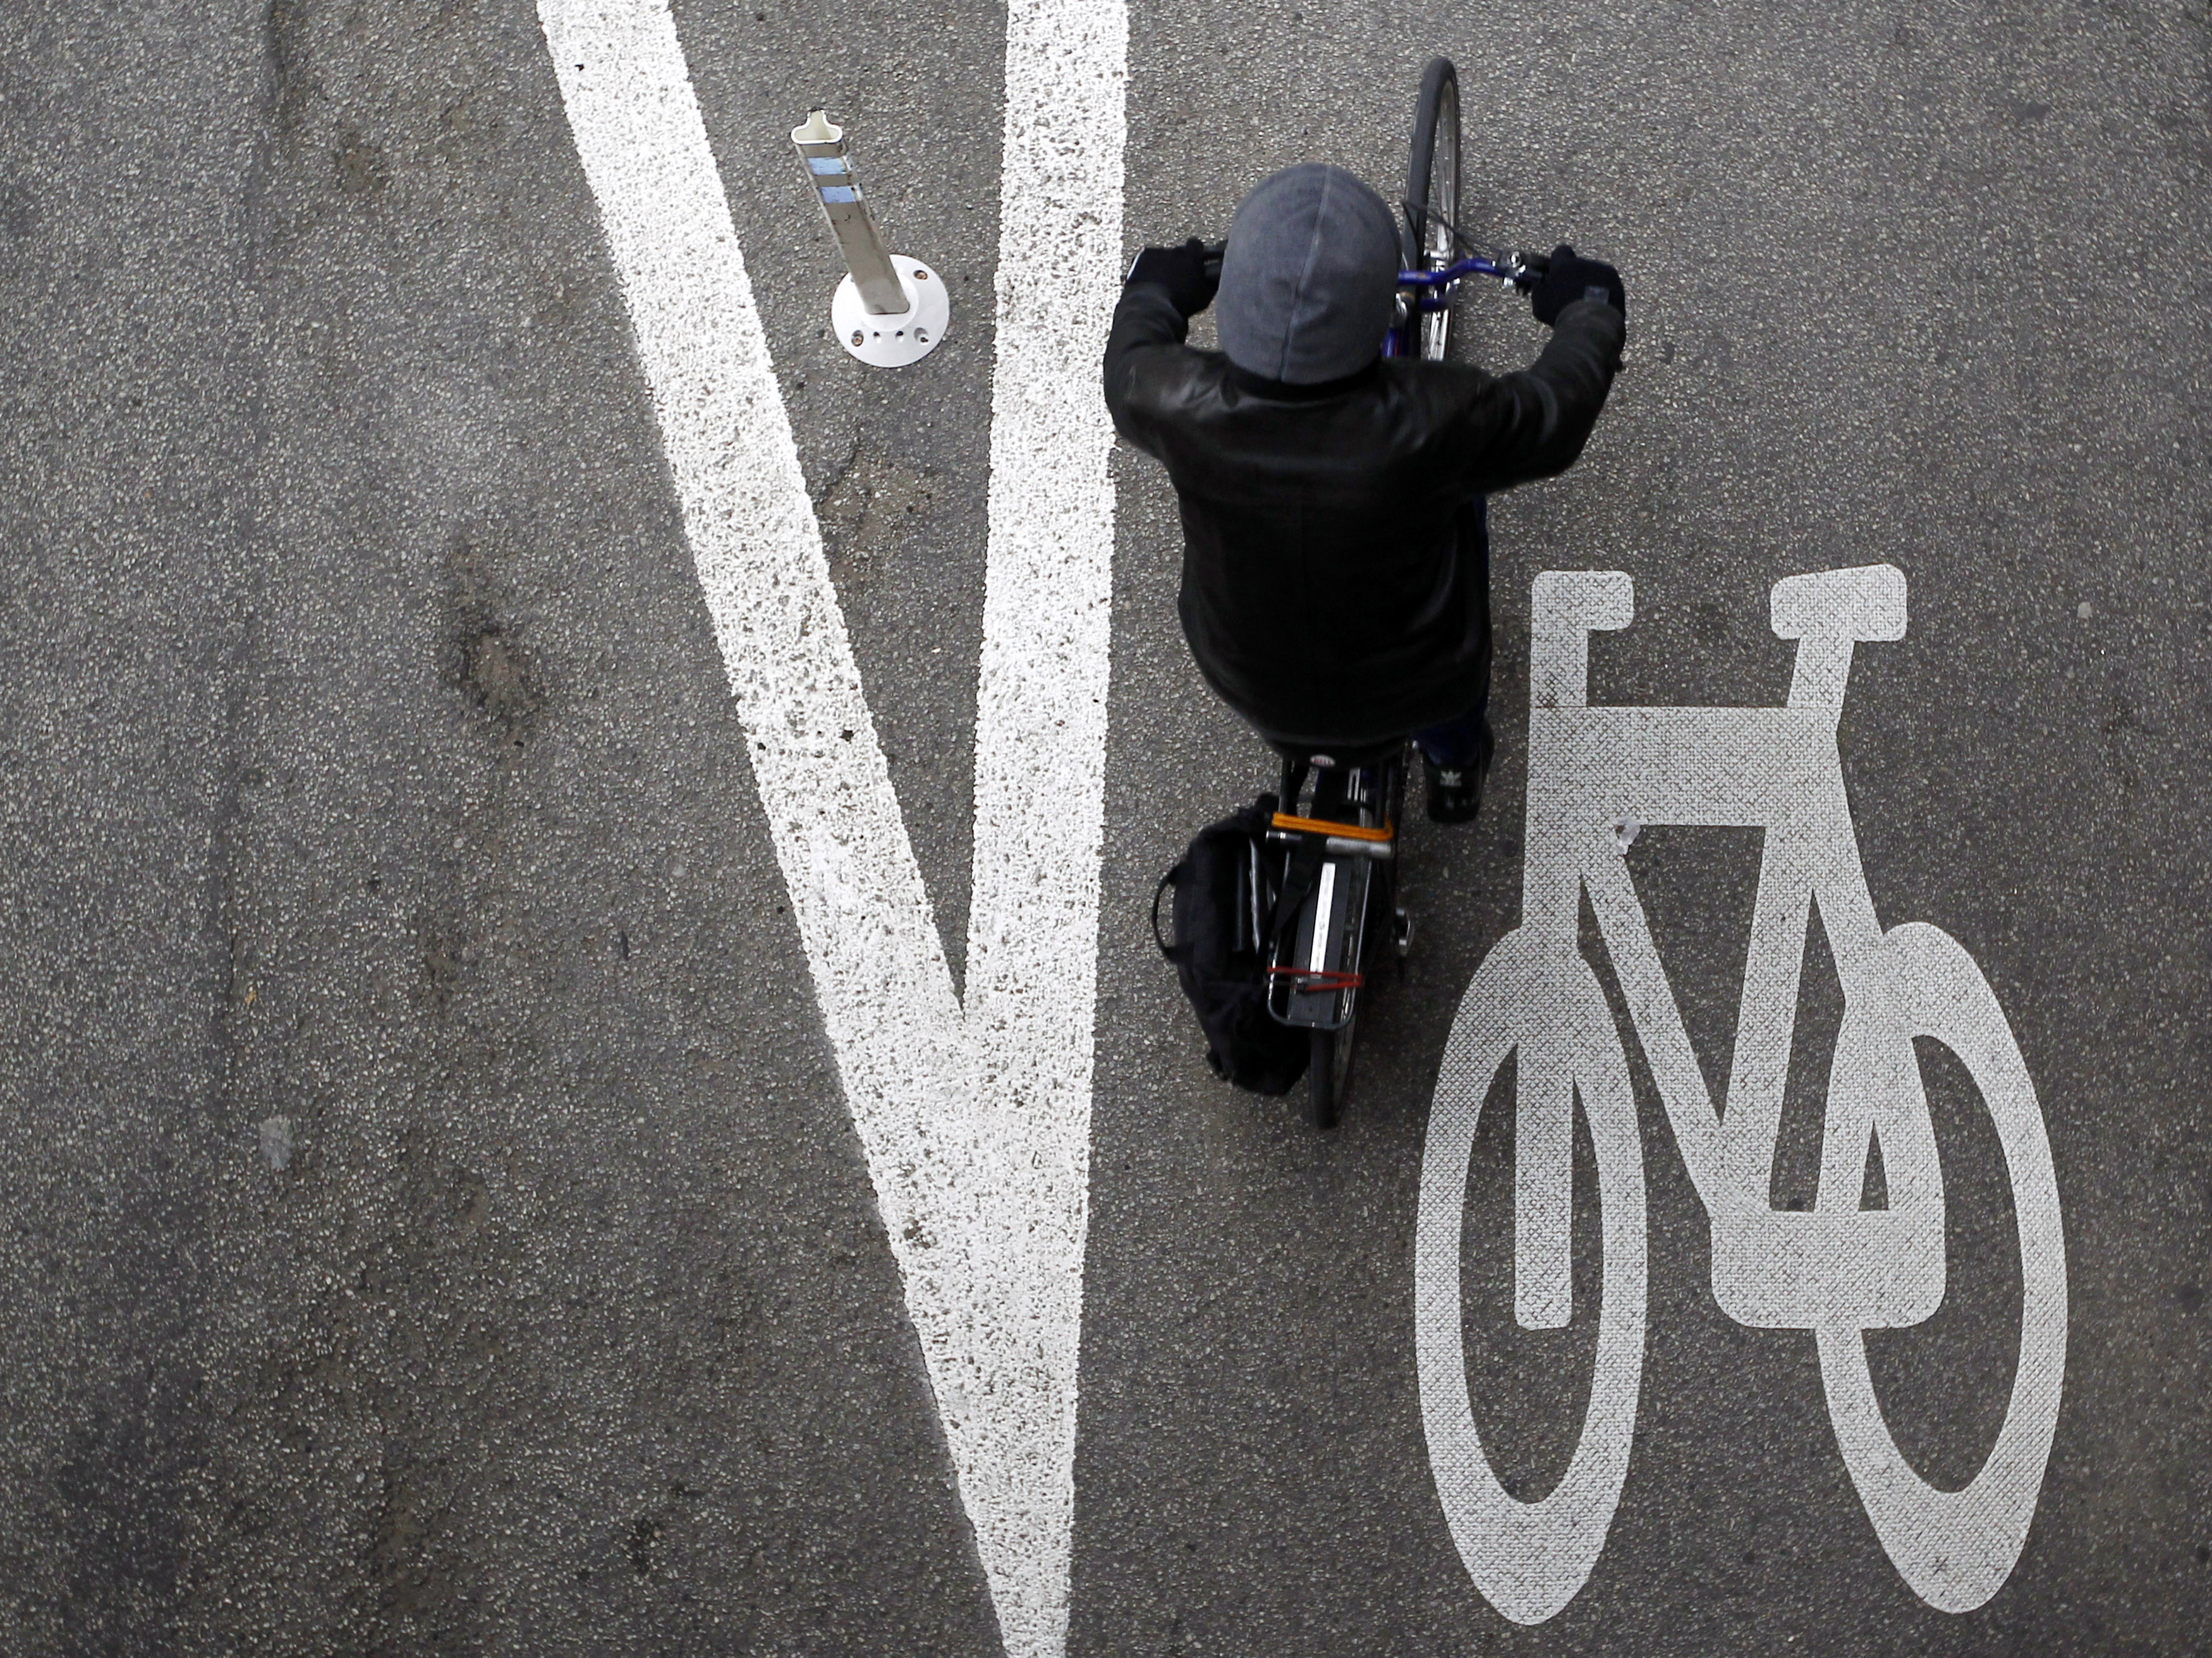 A cyclist rides along the Kinzie Protected Bike Lane in Chicago.